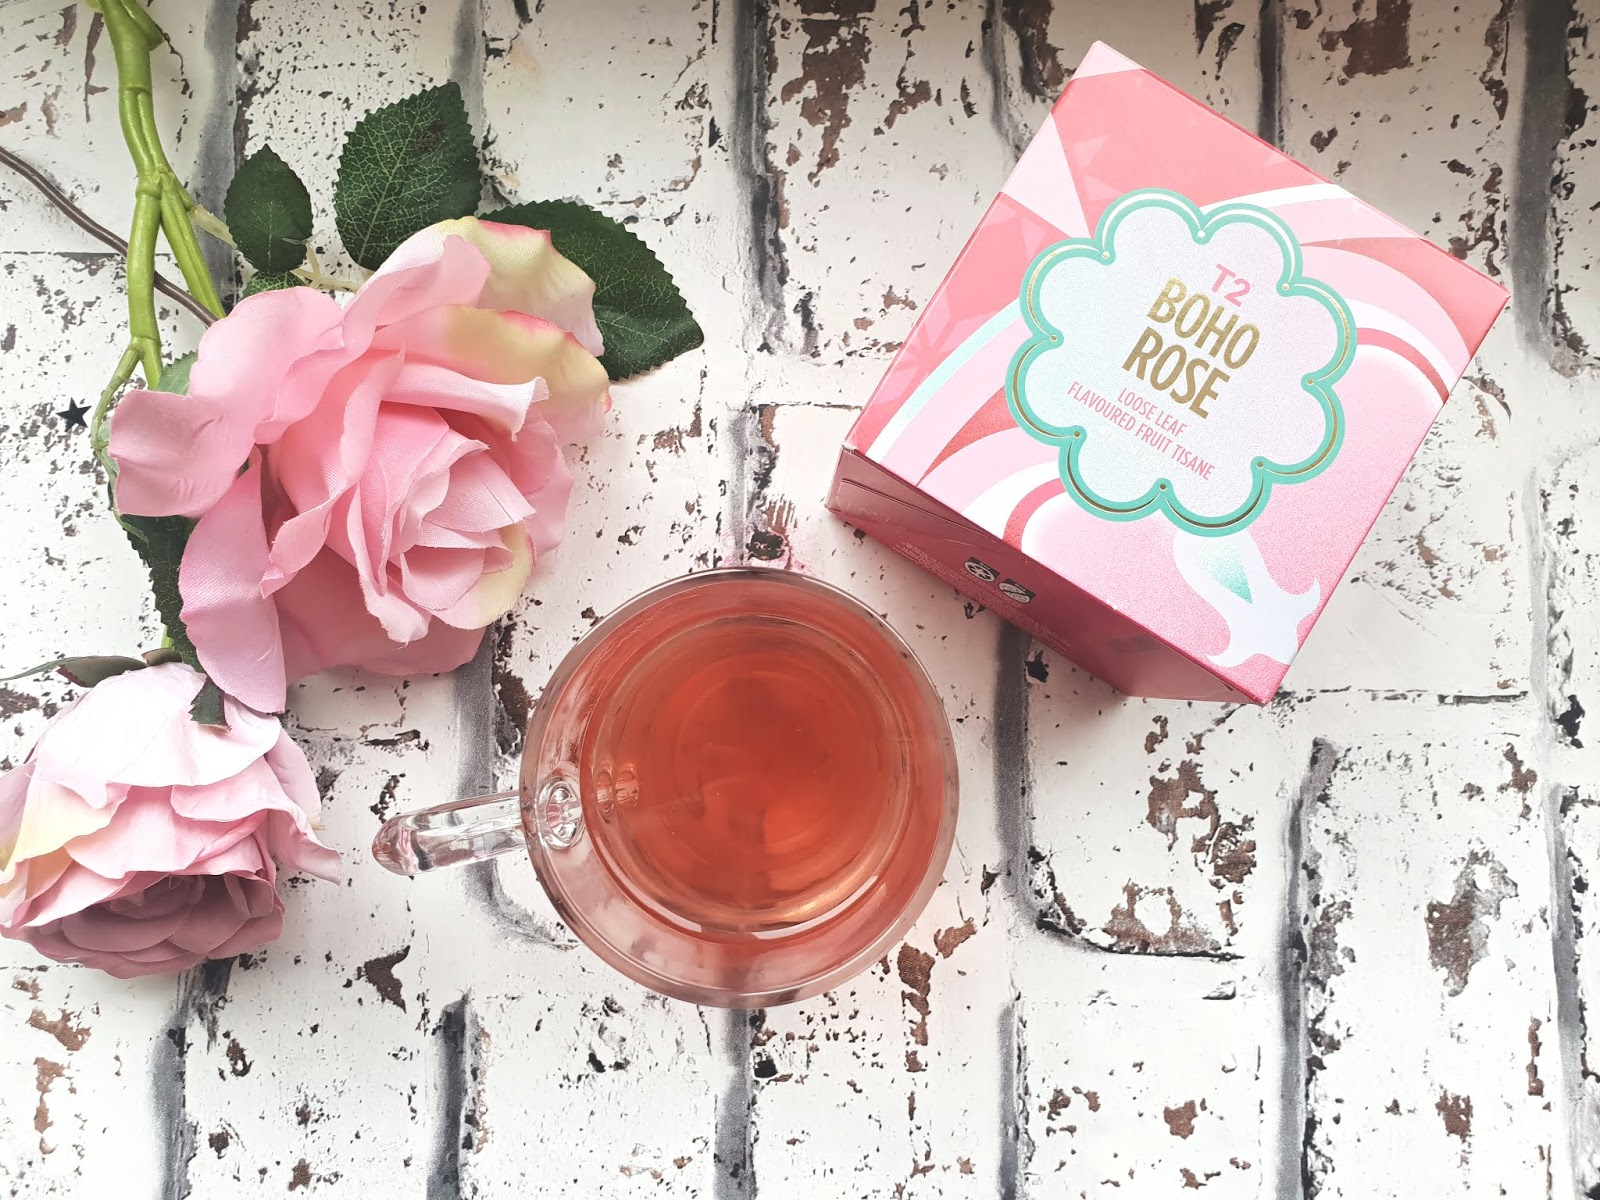 T2 Tea Boho Rose Loose Leaf  Review